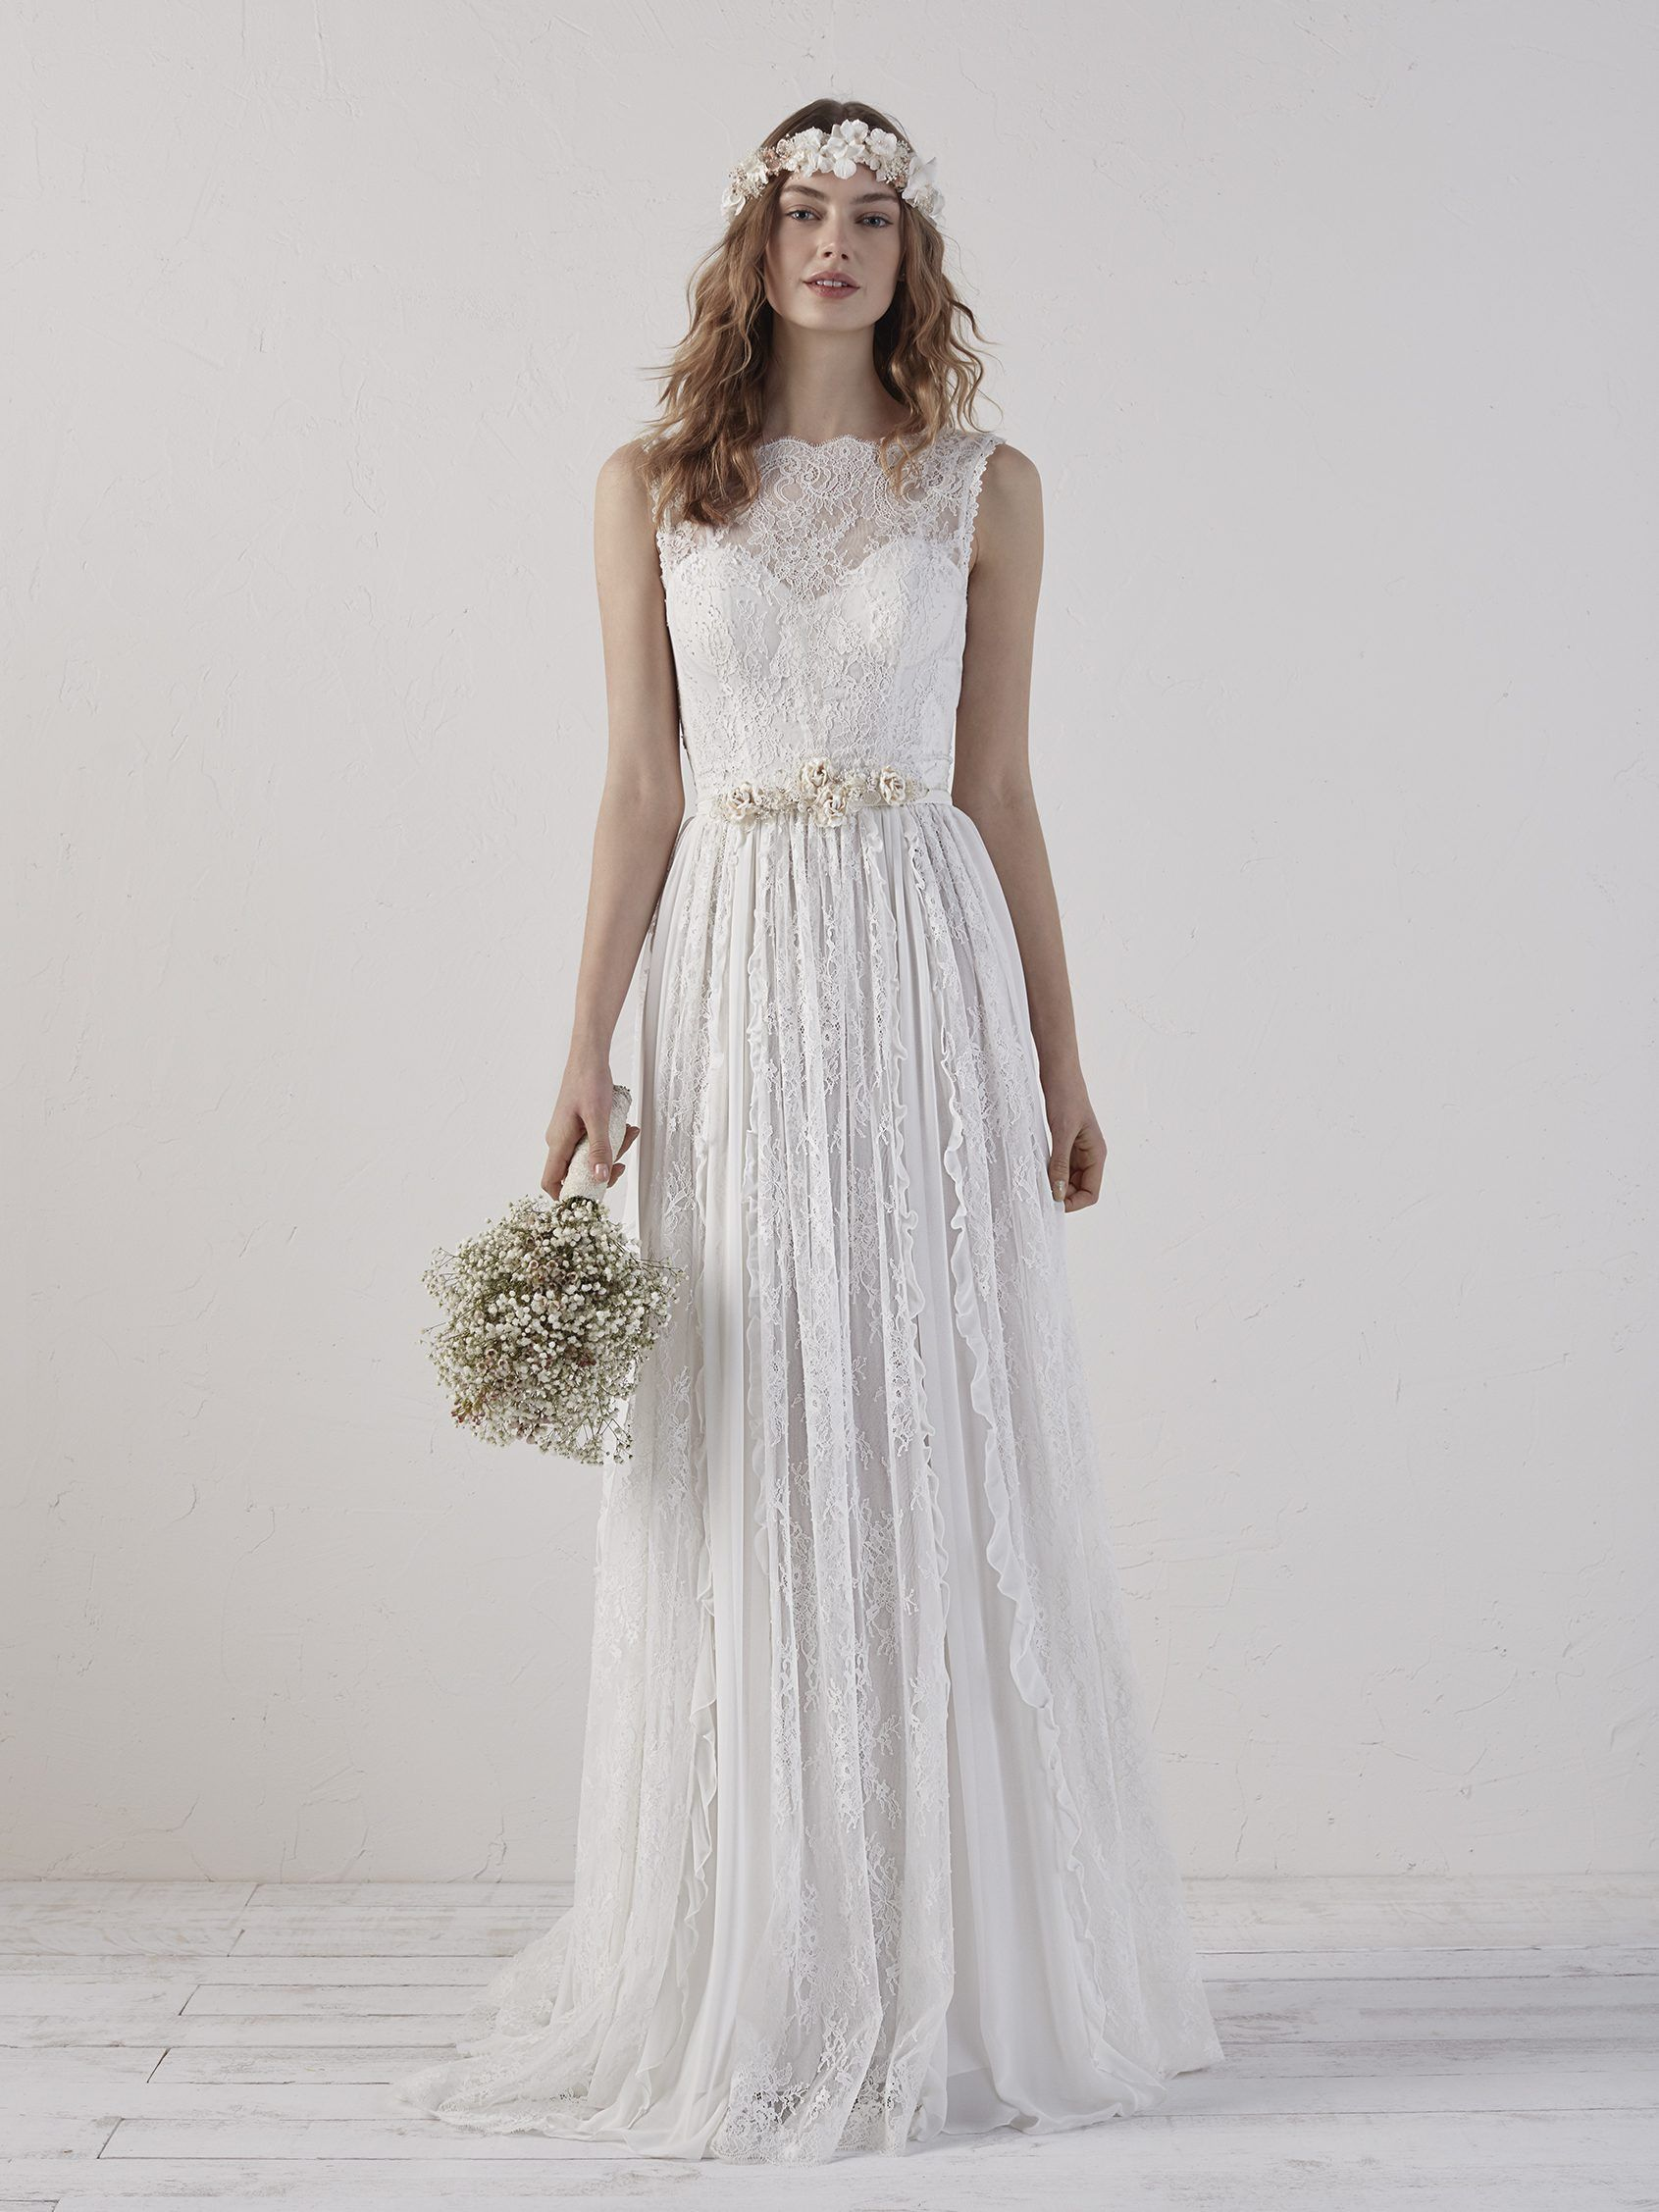 Bohochic wedding dress with sweetheart neckline eiran pronovias